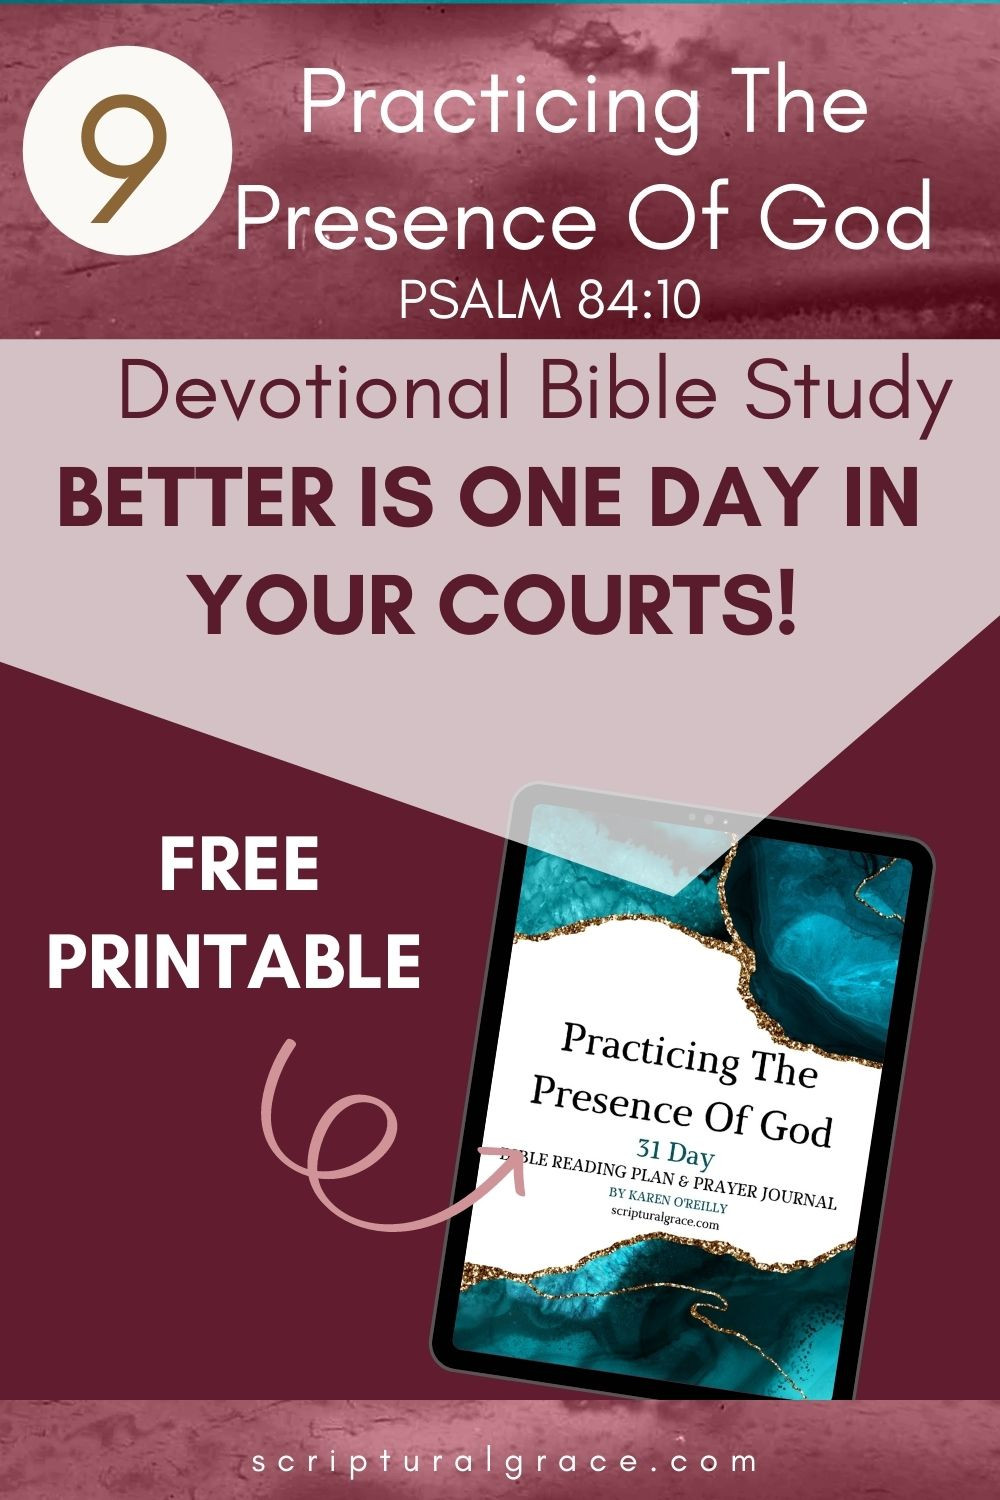 FREE PRINTABLE PRACTICING THE PRESENCE OF GOD PSALM 84:10 BETTER IS ONE DAY IN YOUR COURTS